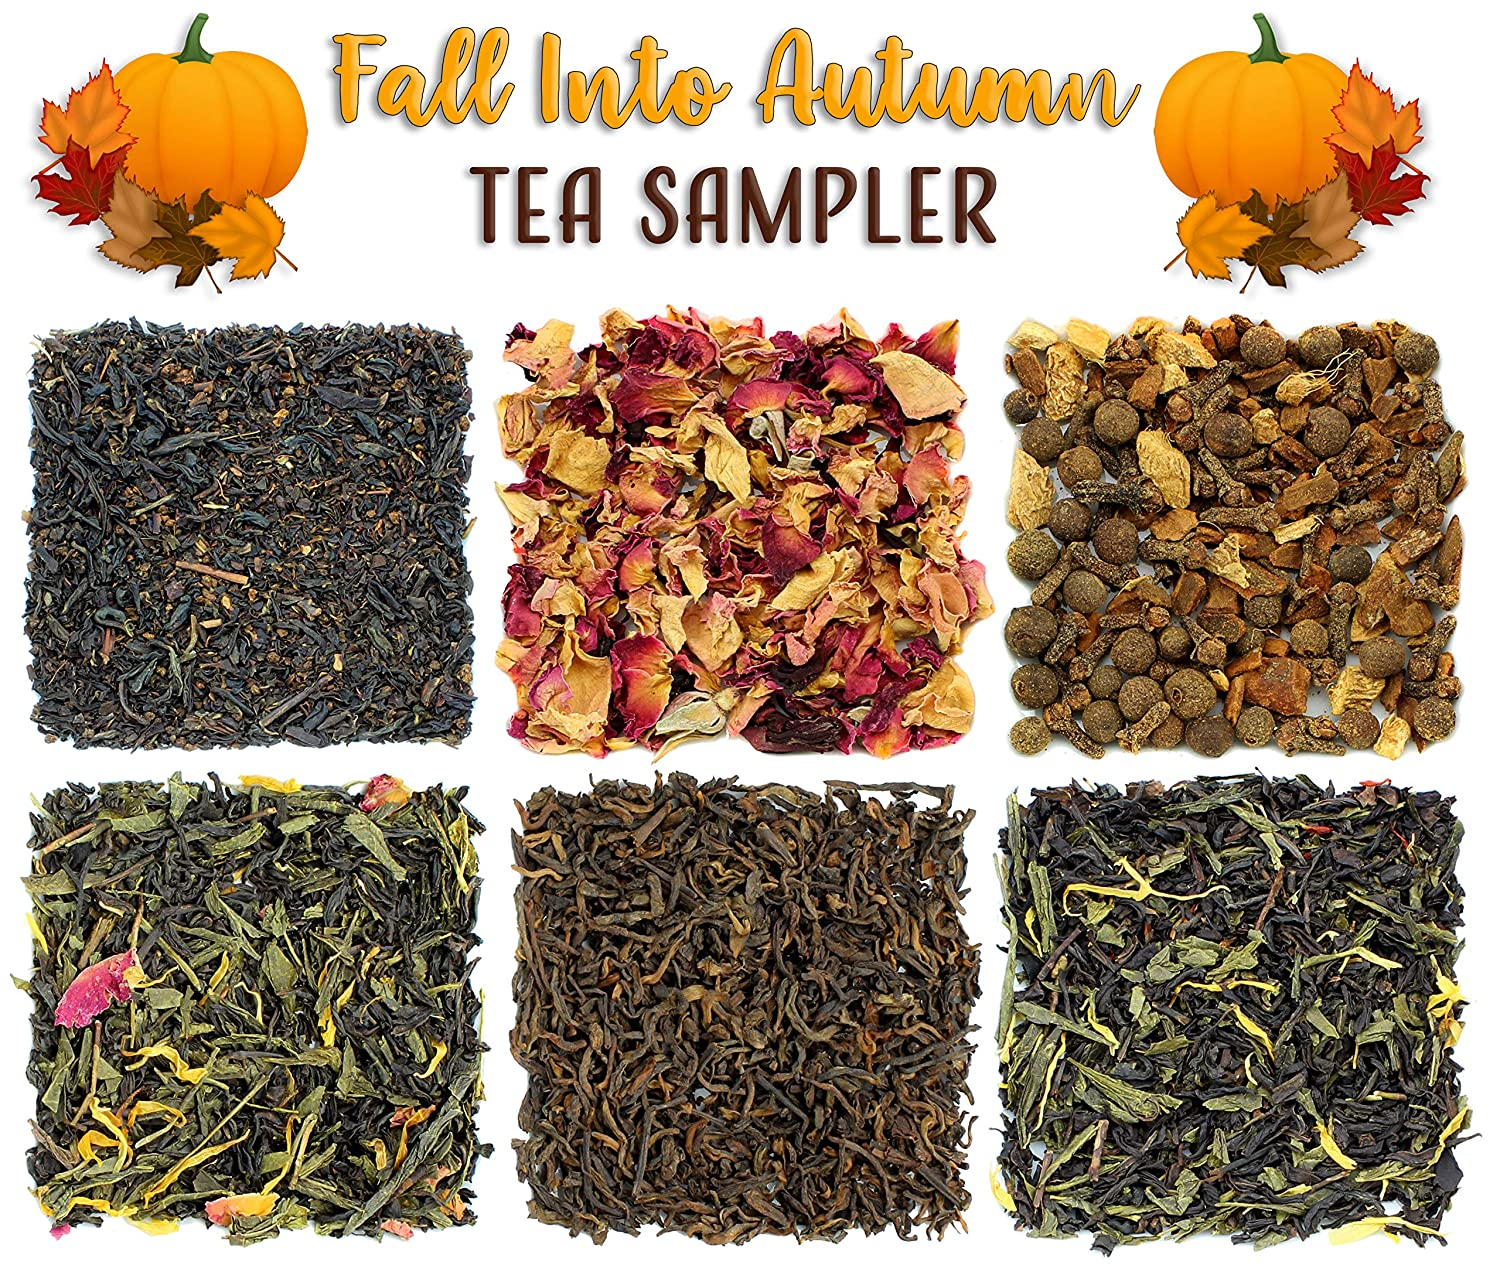 Fall into Autumn Loose Leaf Tea Sampler, Variety Gift Set of 6 Harvest Loose Leaf Teas Solstice Tea Traders